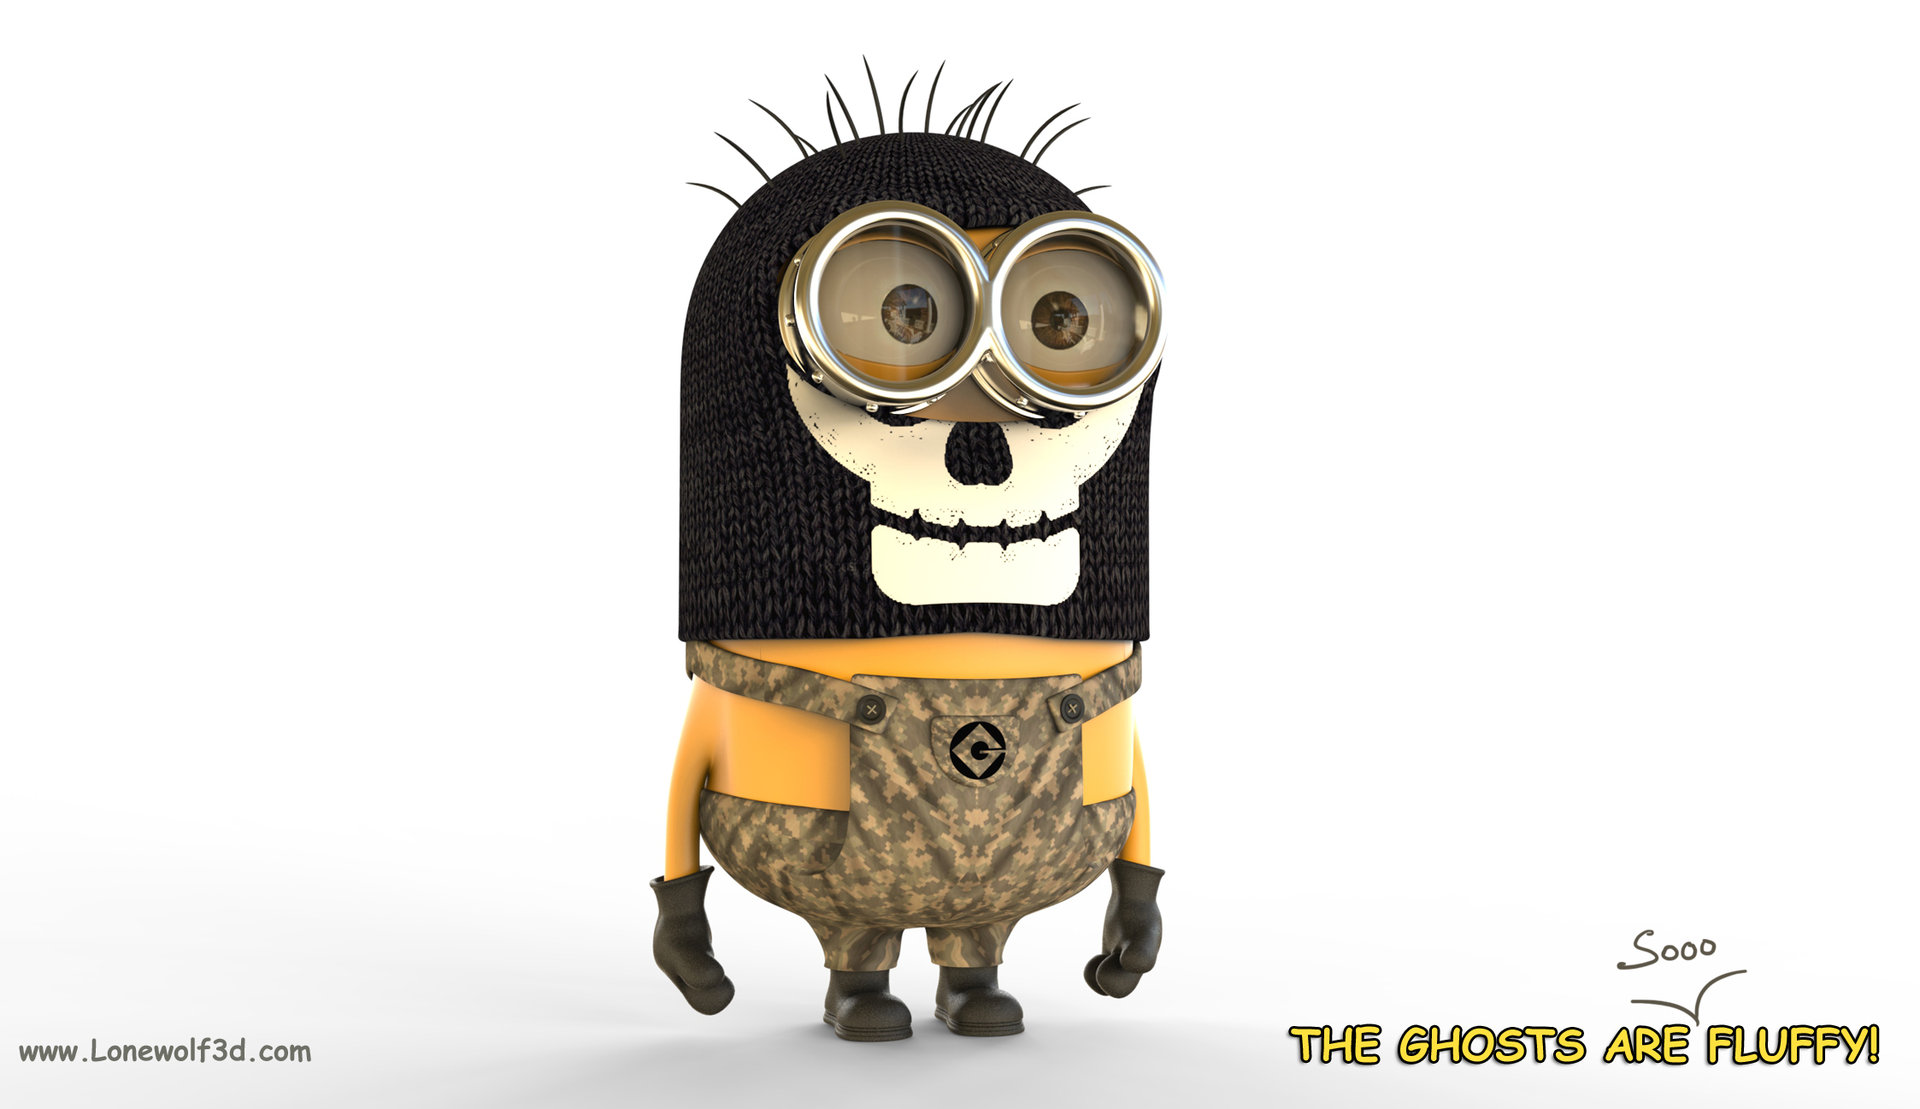 Call of duty minion 3